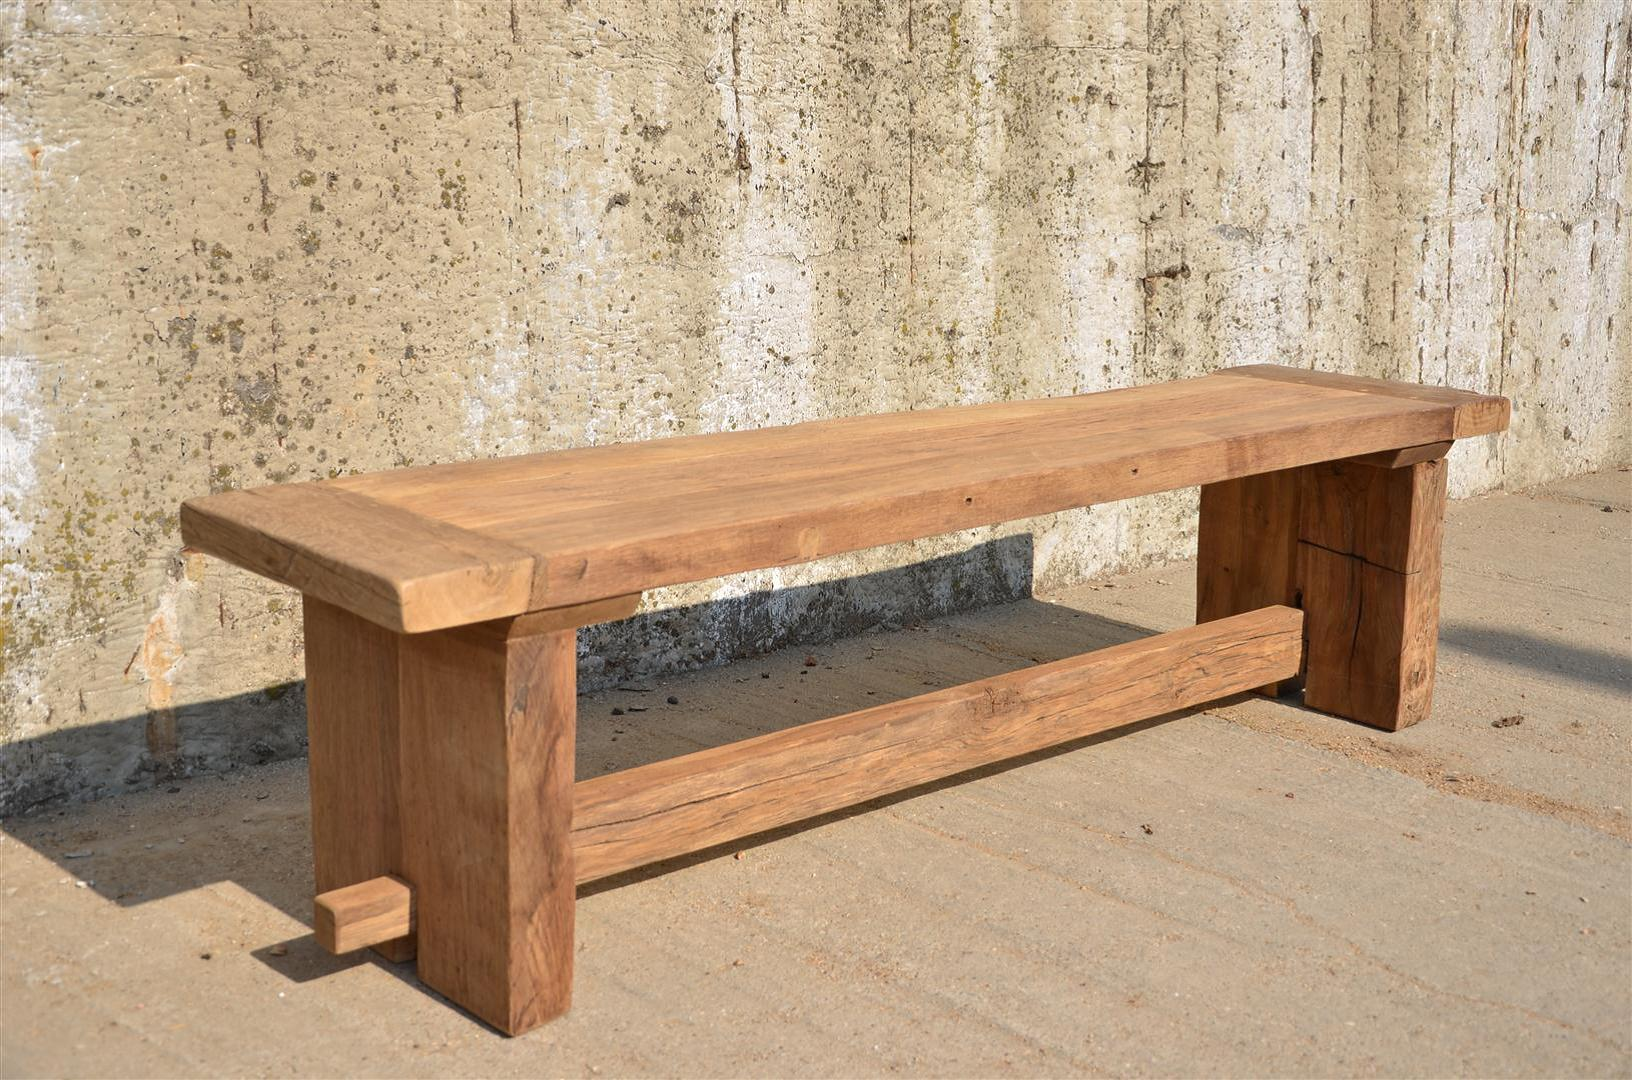 Brand Spanking New Limited Edition Reclaimed Wood Furniture Pieces Mobius Living Blog